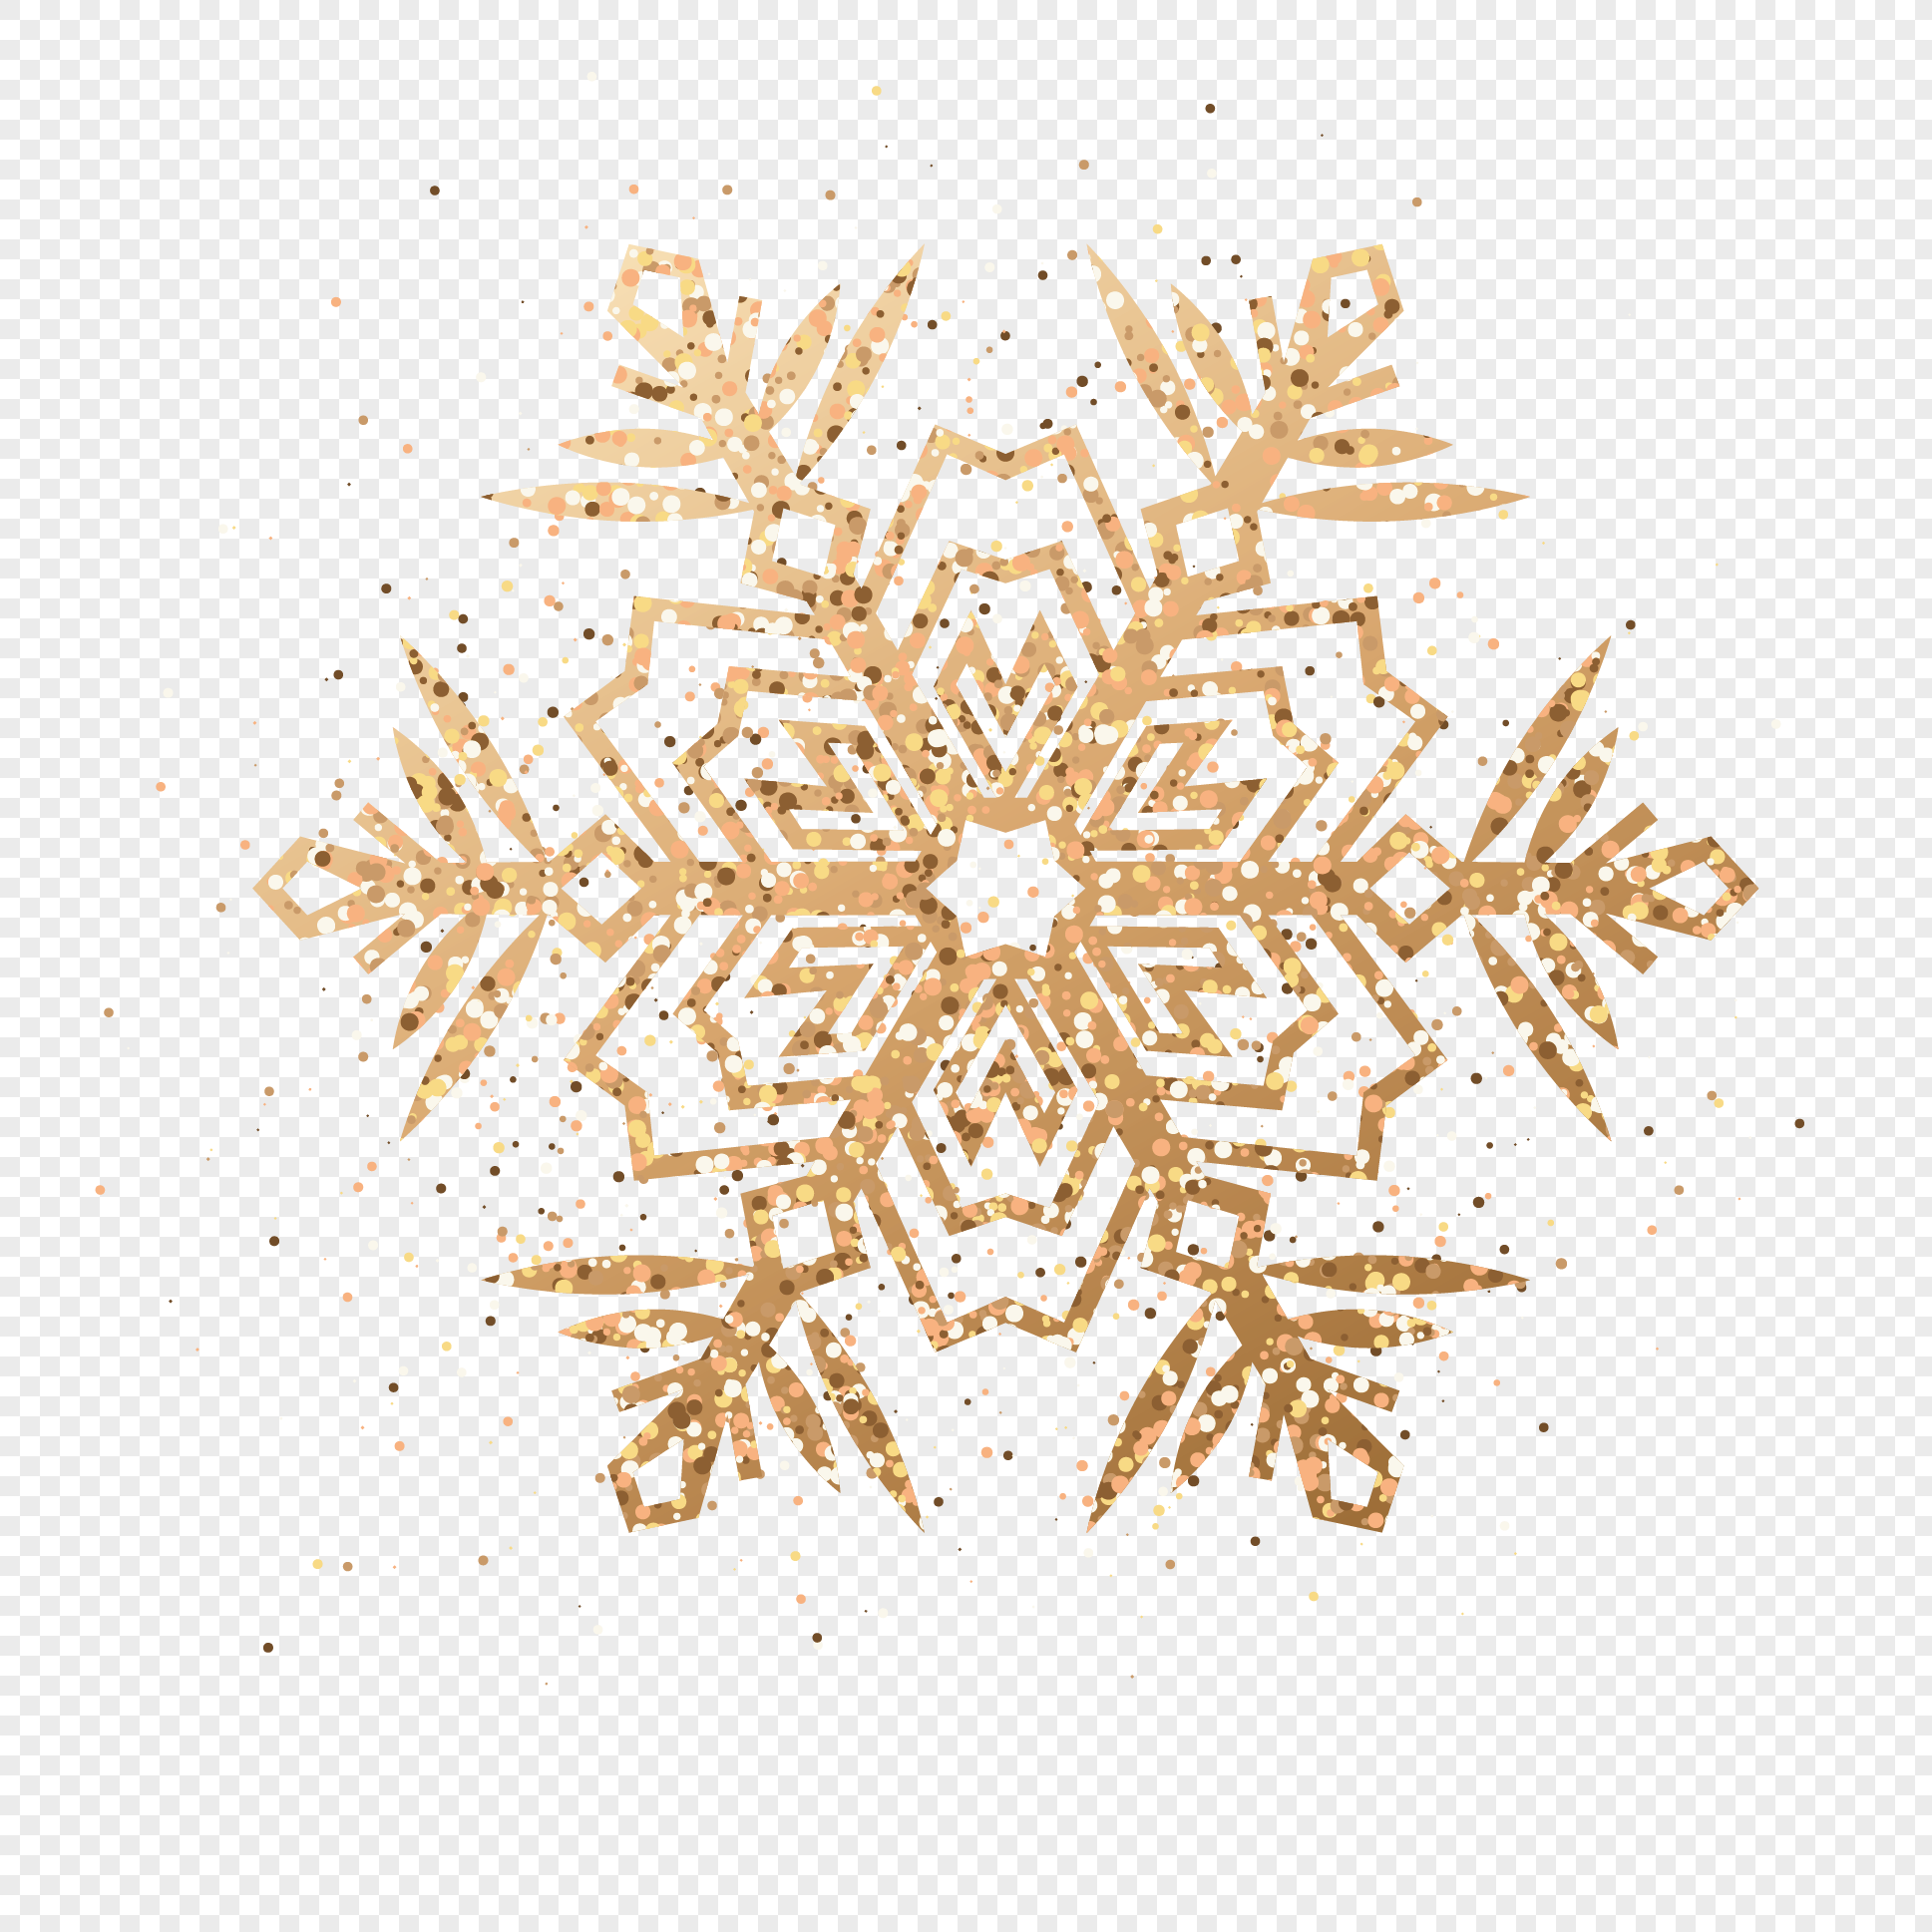 1937x1937 Golden Snowflake Vector Png Image Picture Free Download